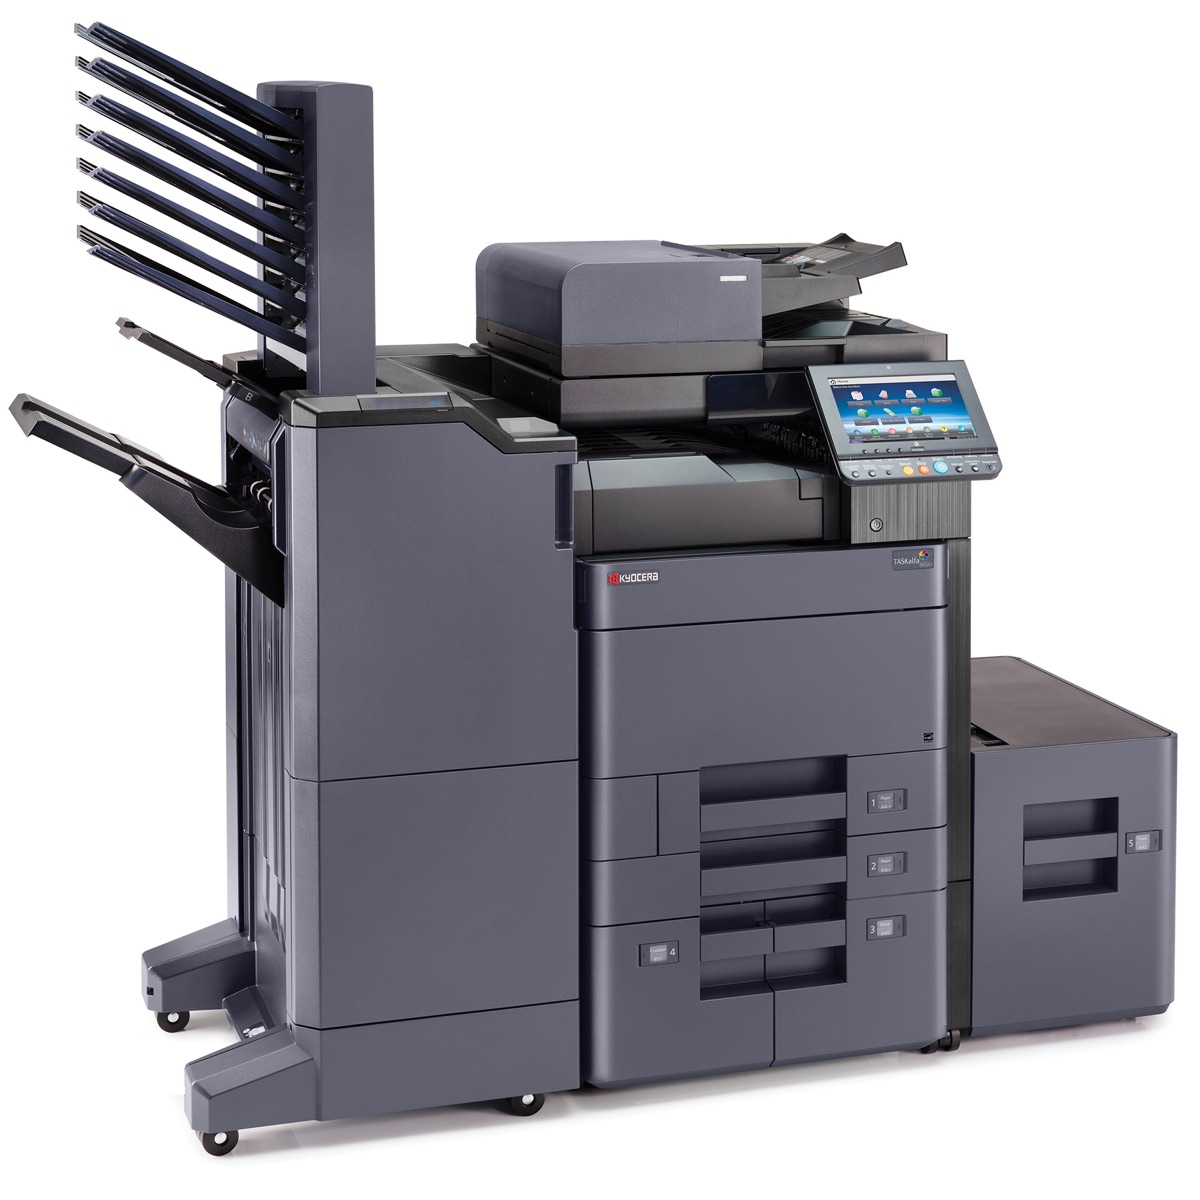 Kyocera Copiers:  The Kyocera TASKalfa 6052ci Copier